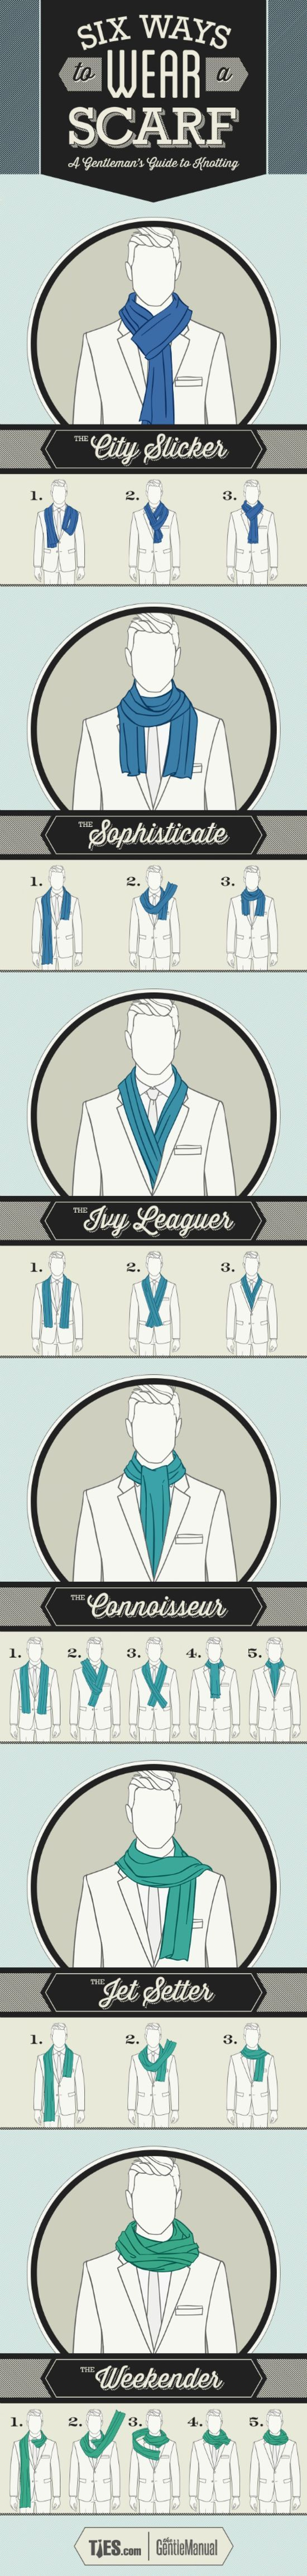 Six Ways To Wear A Scarf  P/s: for The Connoisseus, step 2 & 3 are the other way around.